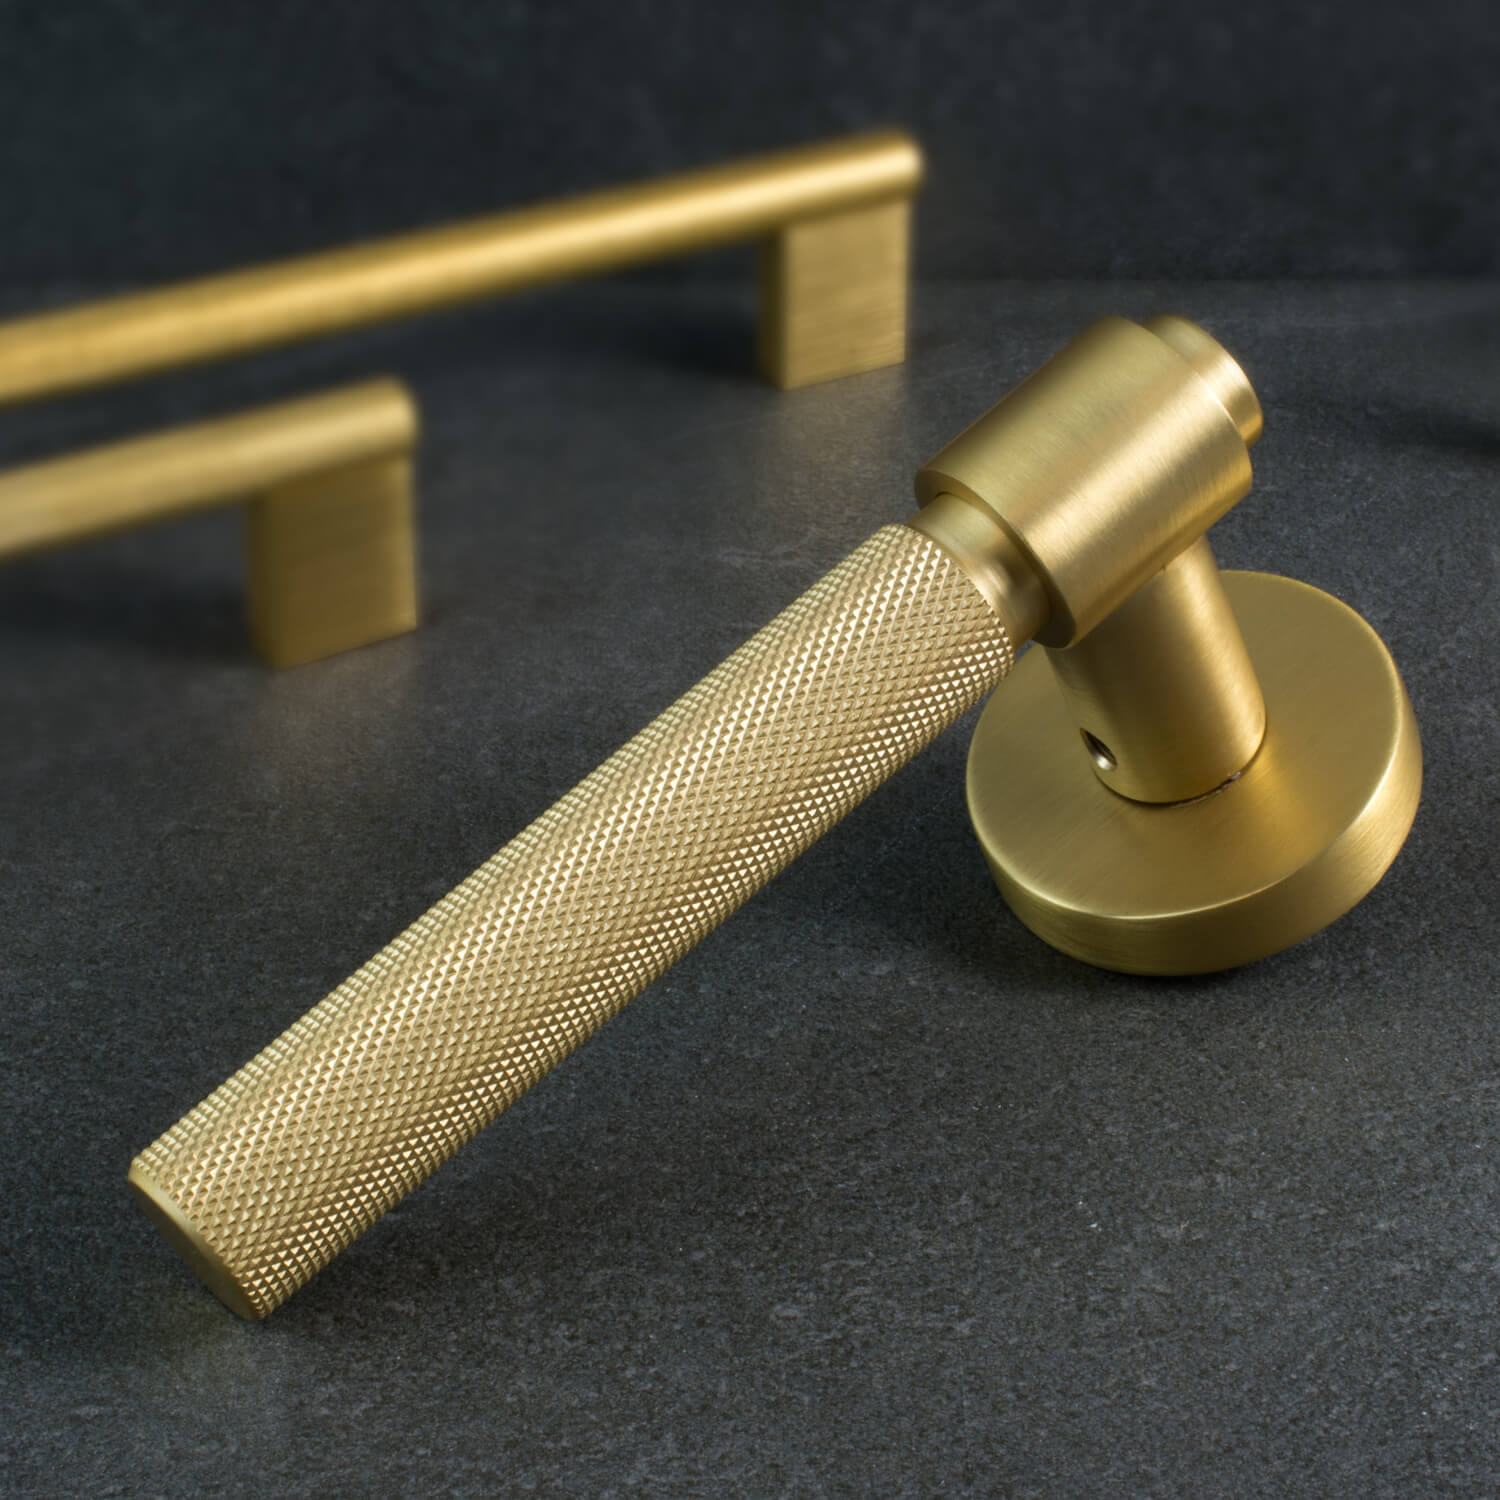 Dørgreb - Helix - Antik bronze - Børstet messing - Mat sort - Børstet stål